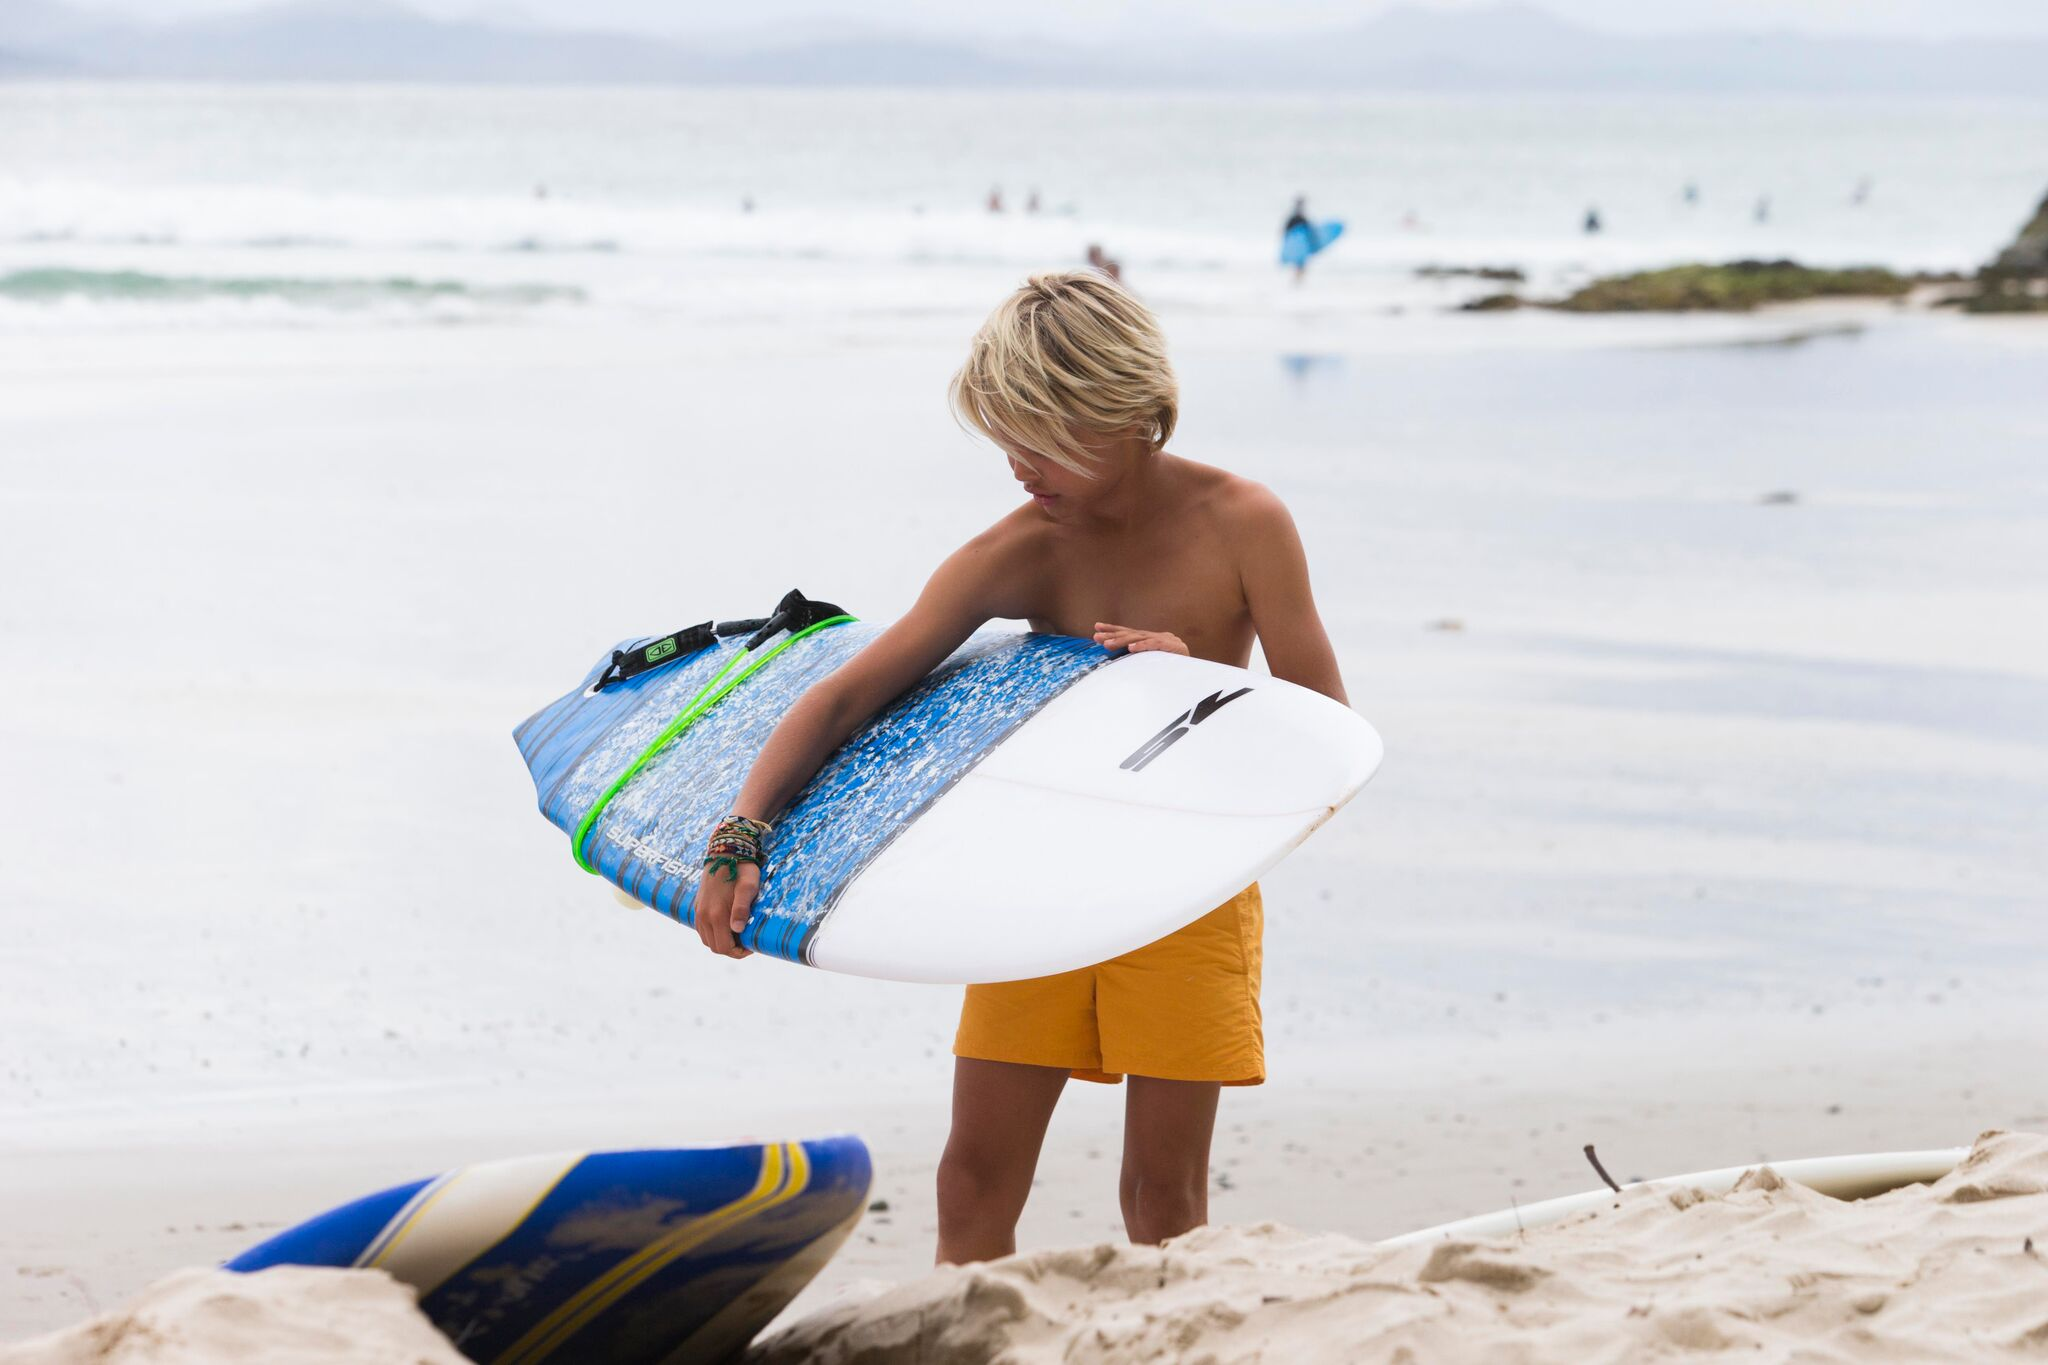 Easton and surfboard